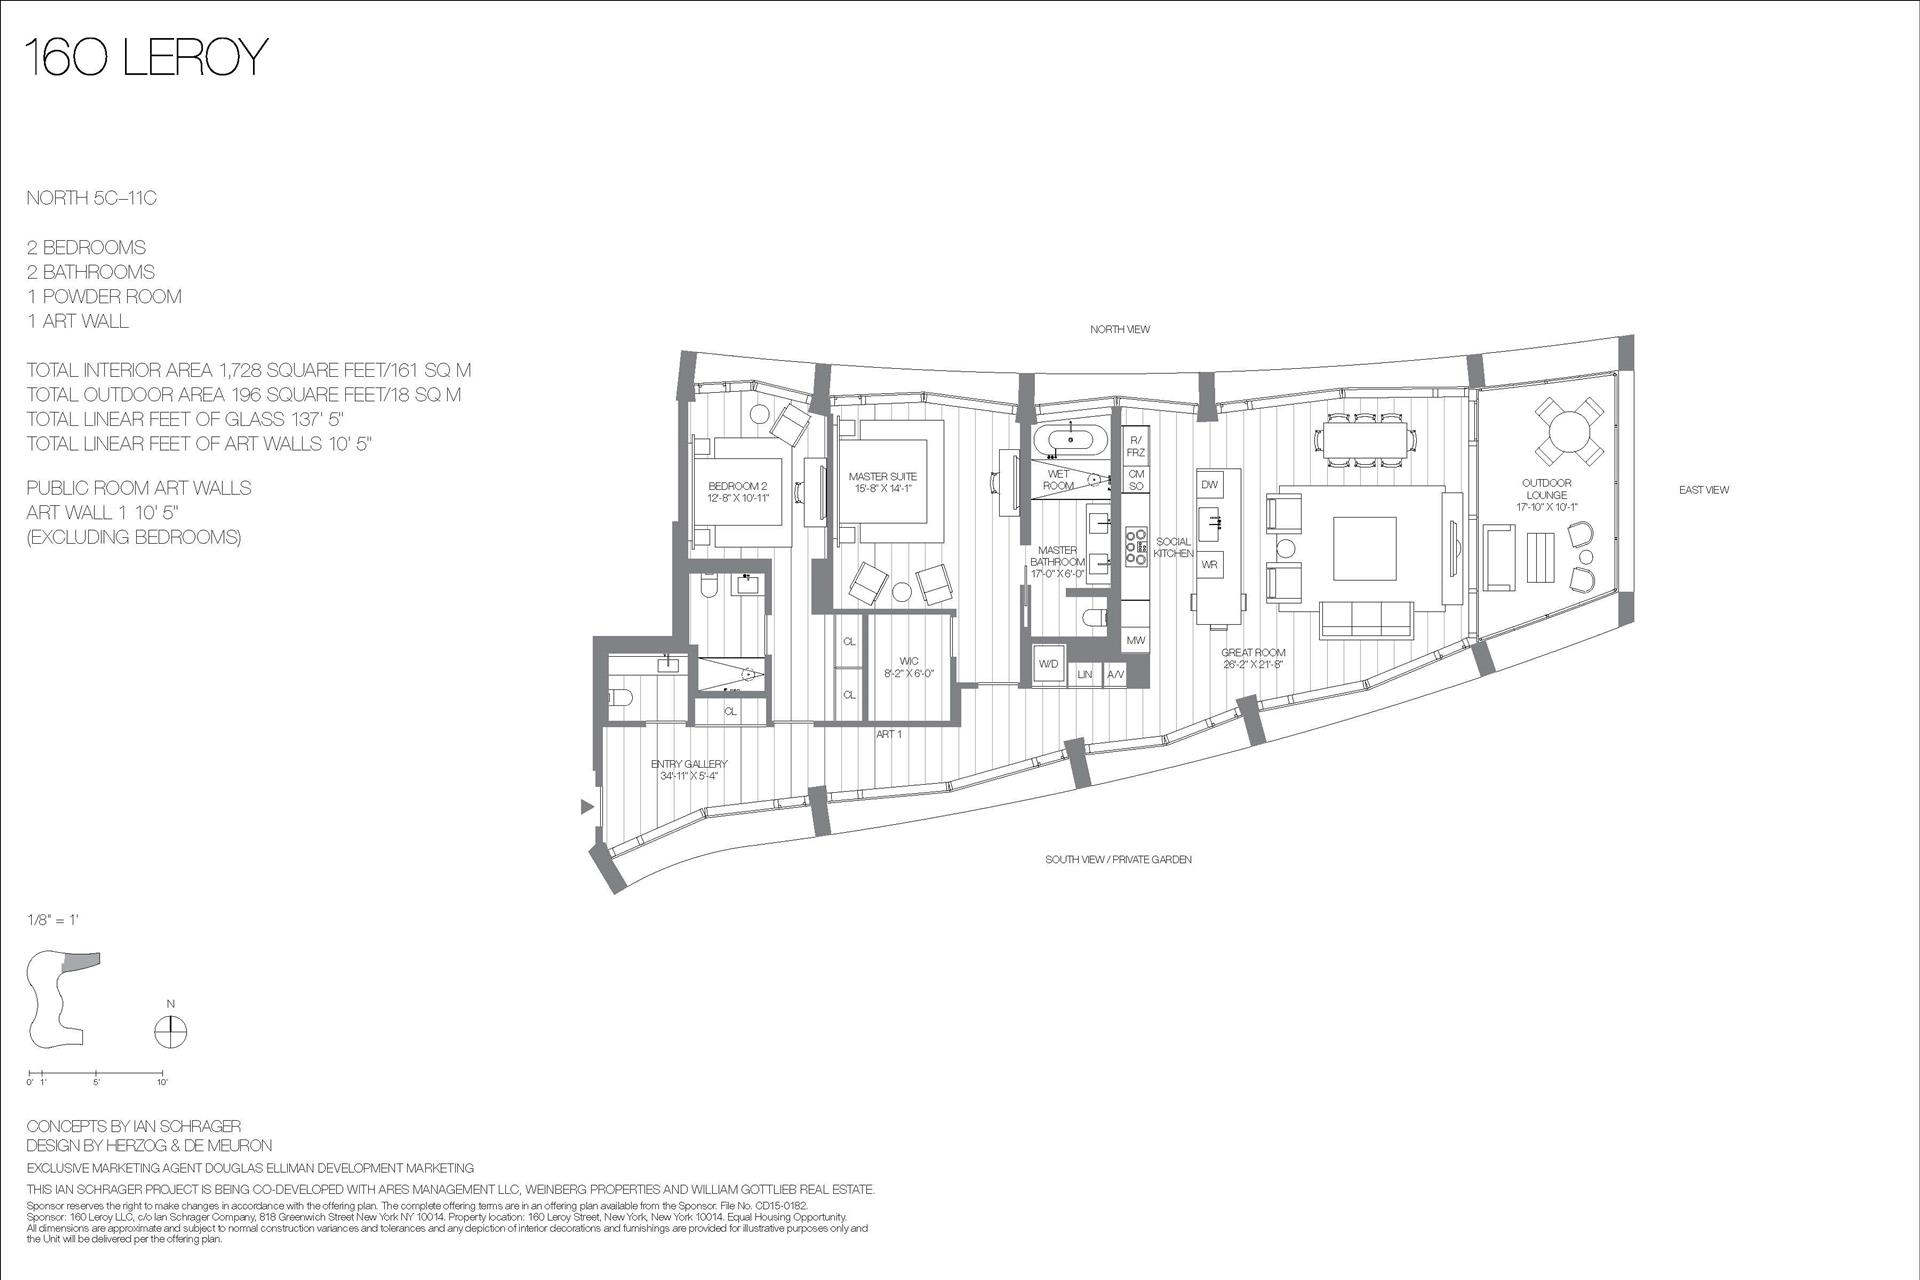 Floor plan of 160 Leroy St, NORTH11C - West Village - Meatpacking District, New York